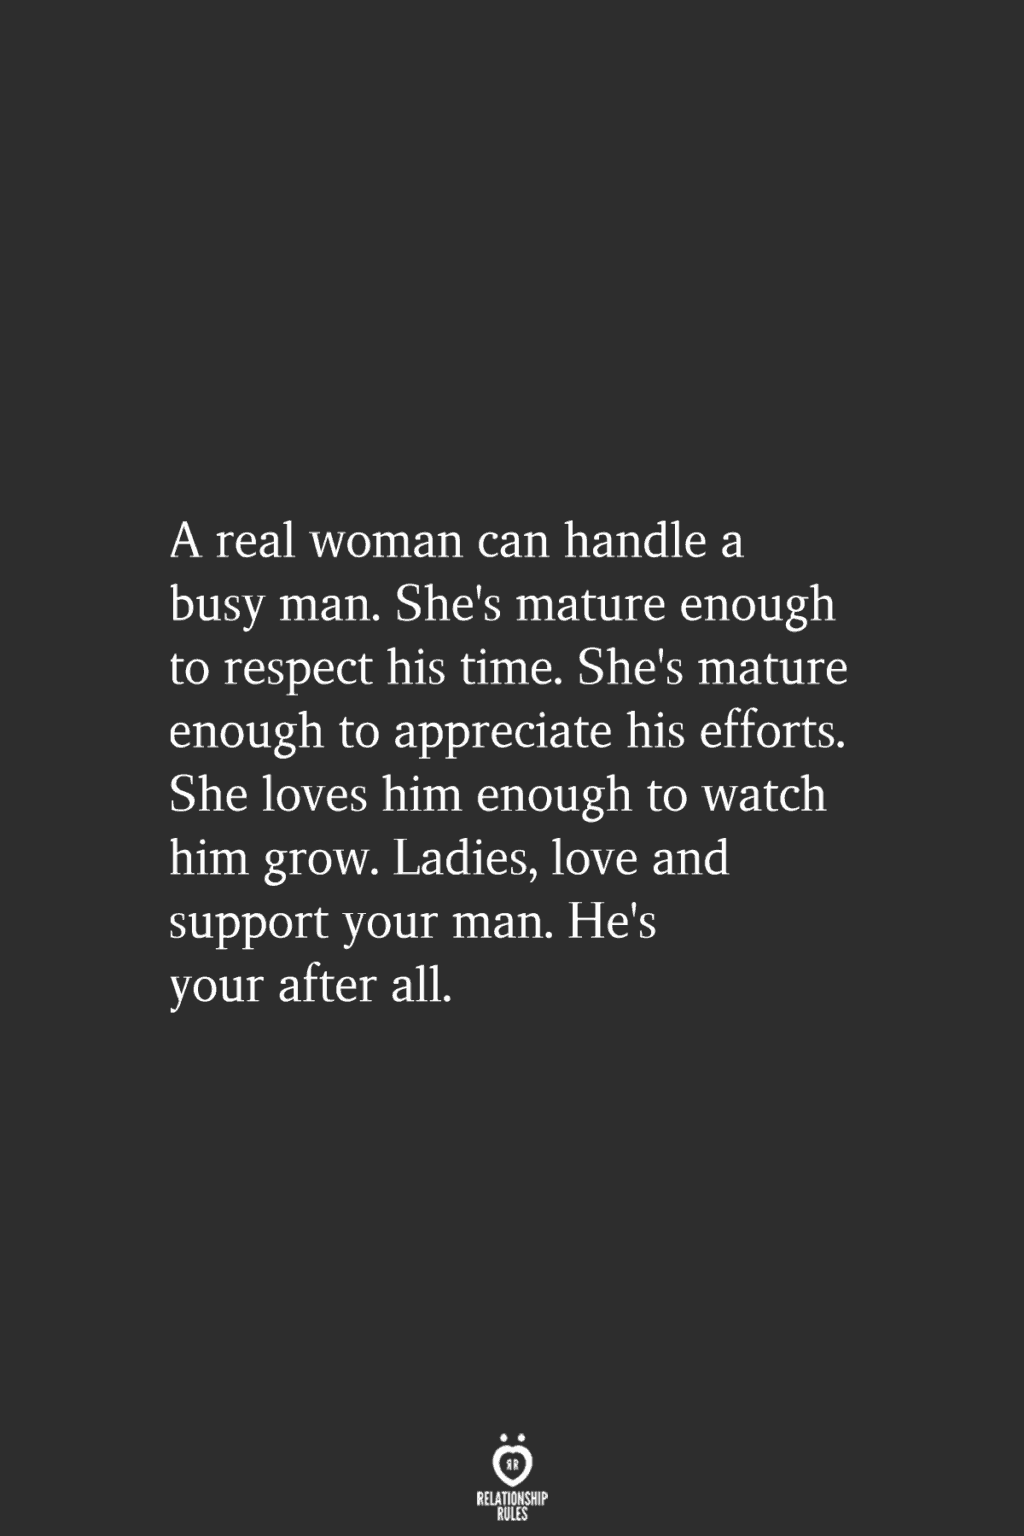 A Real Woman Can Handle A Busy Man. She's Mature Enough To Respect His Time